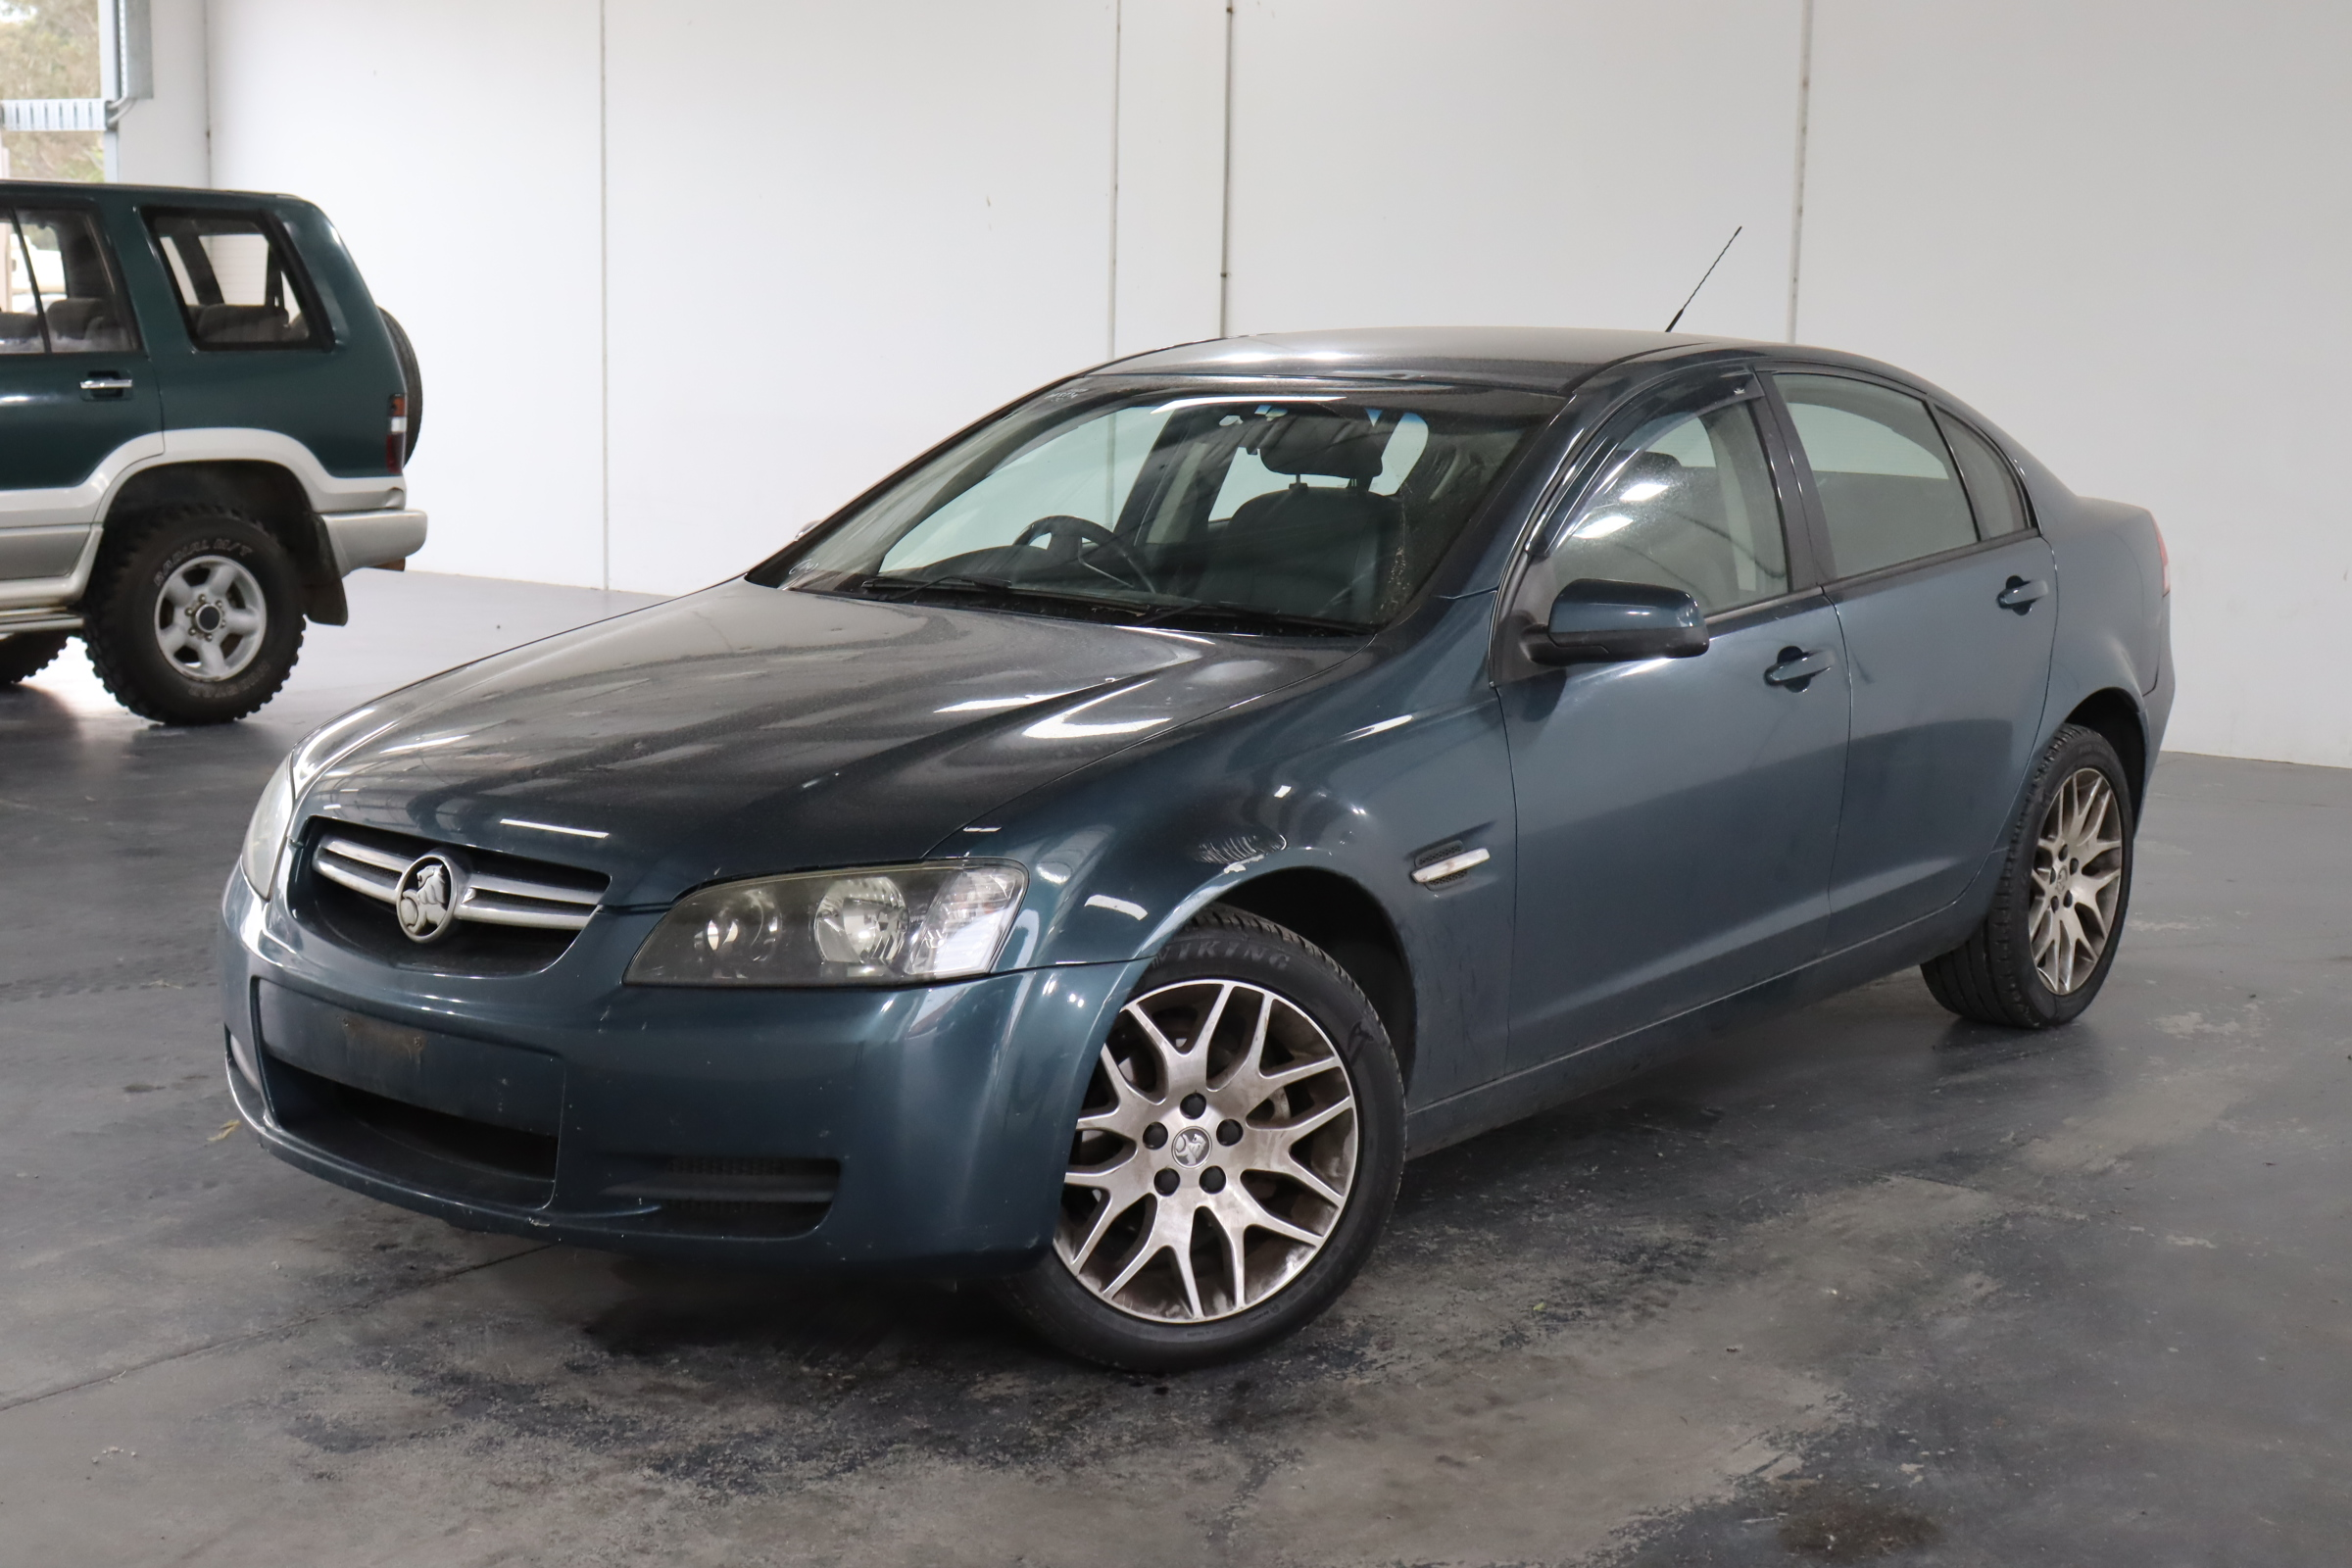 2008 Holden Commodore Omega VE AT Sedan (WOVR Inspected)